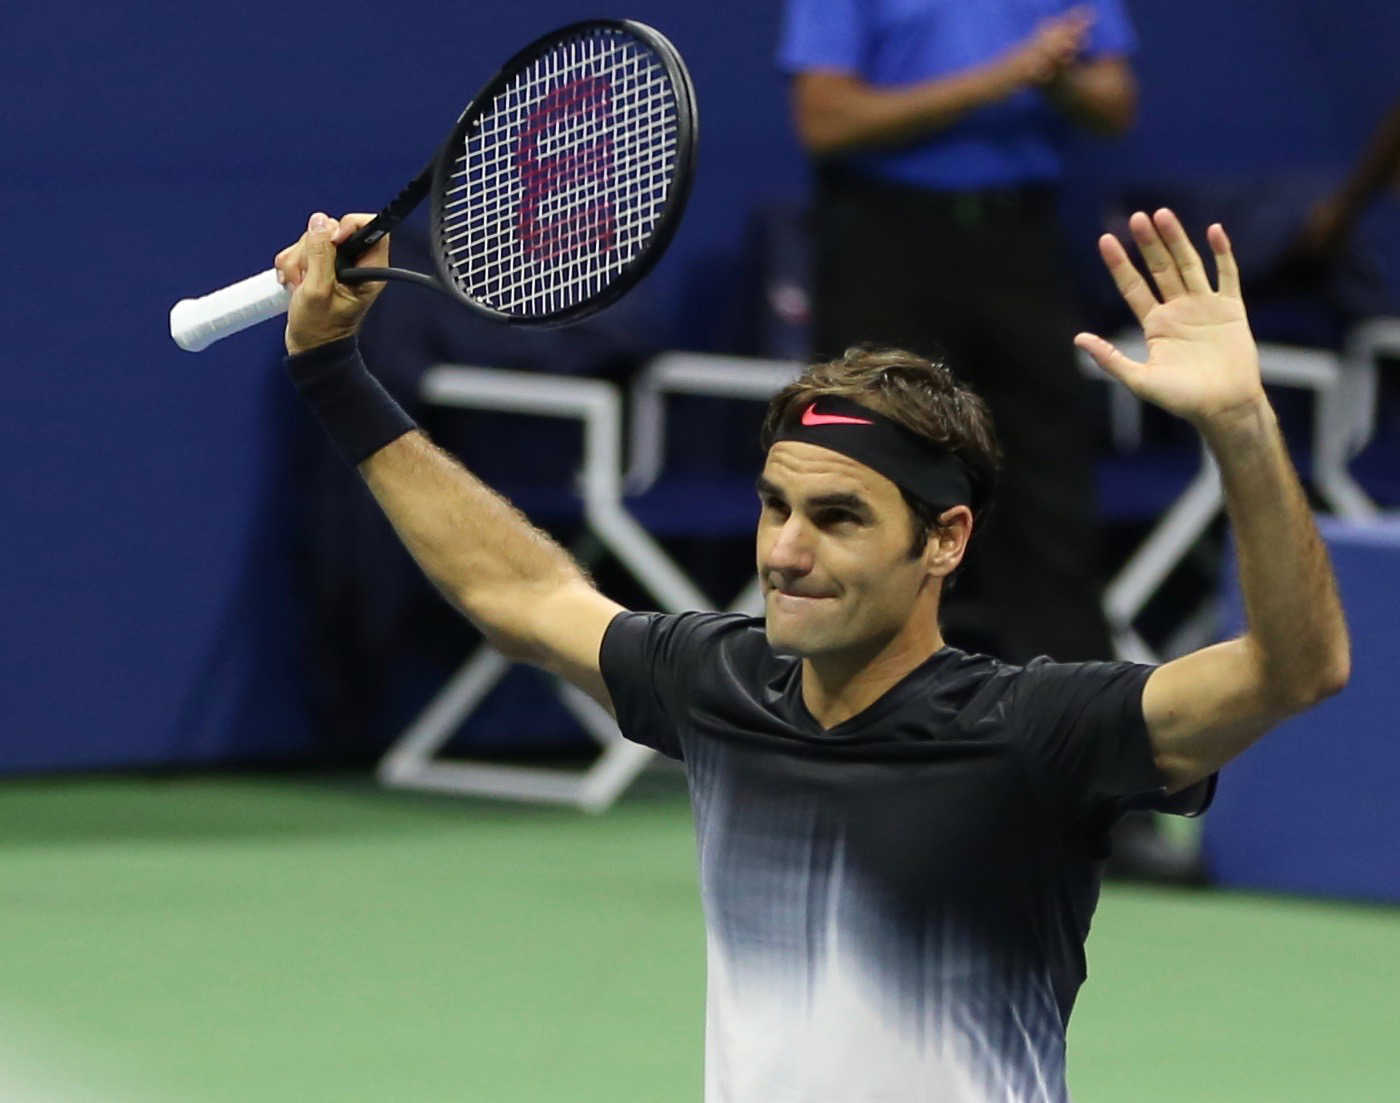 Roger Federer, Rafael Nadal look vulnerable in year's final major